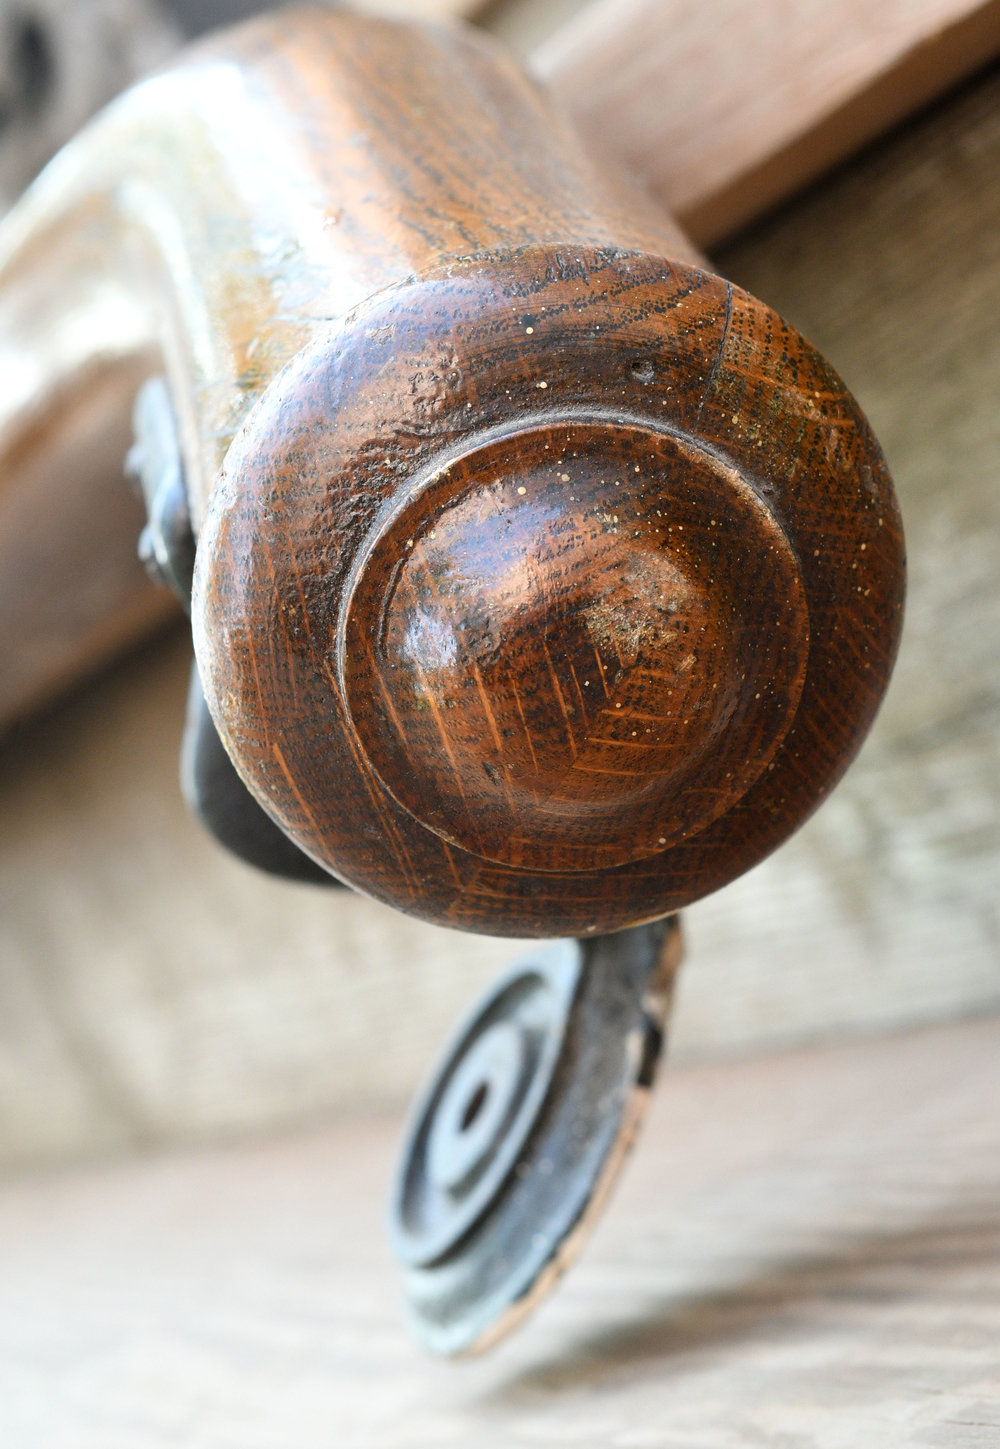 48001-oak-handrail-end-cap.jpg